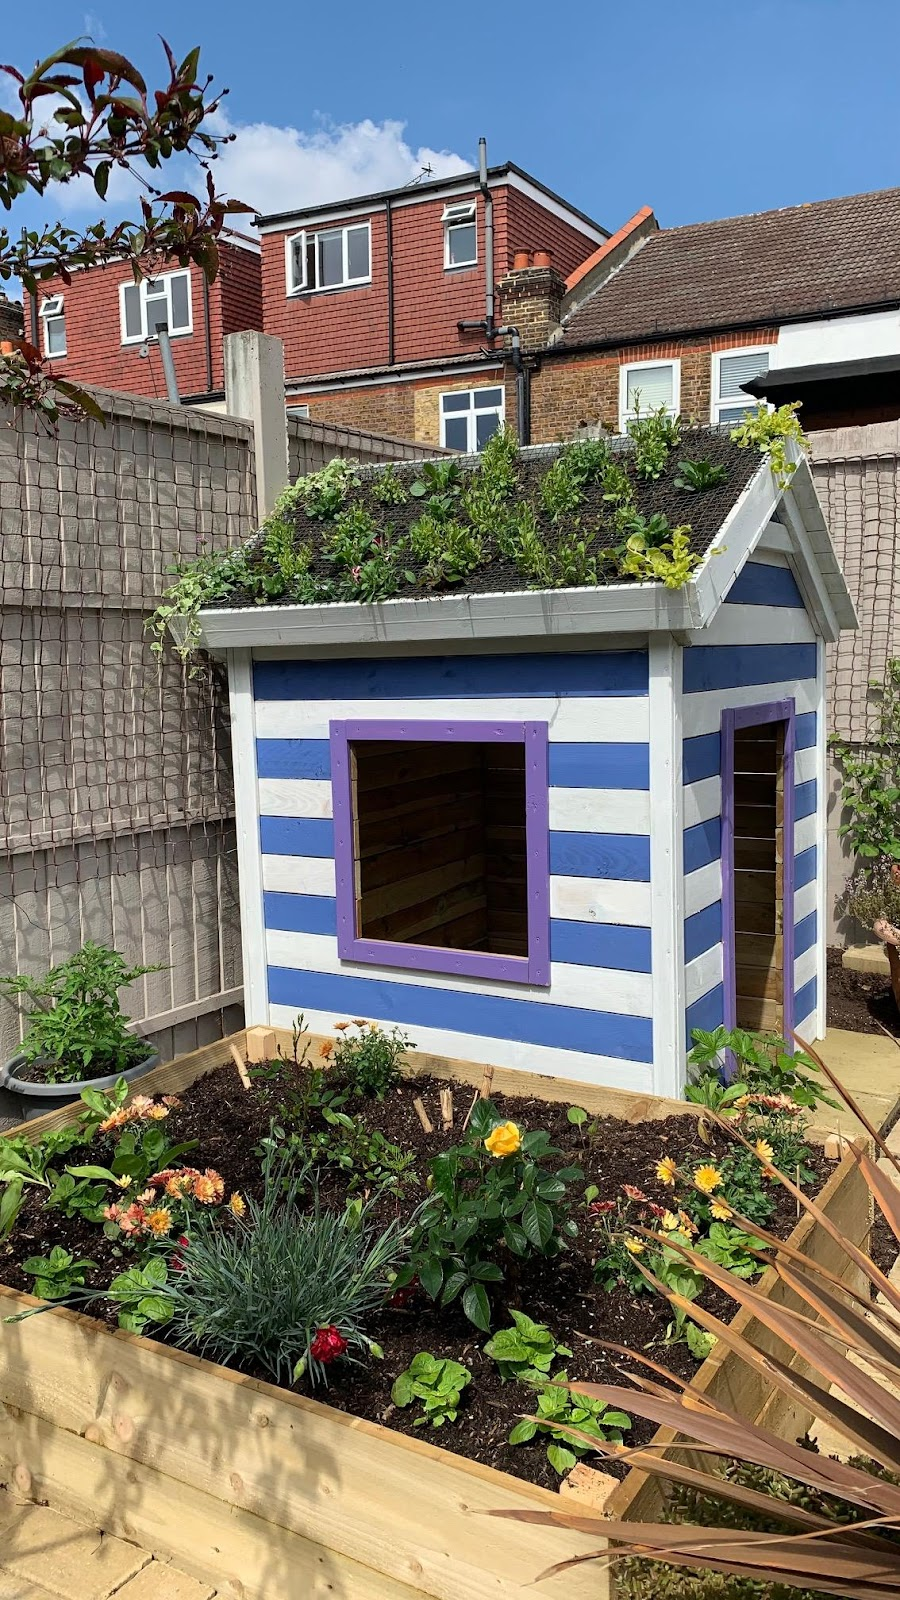 Personalise your DIY playhouse with a touch of paint